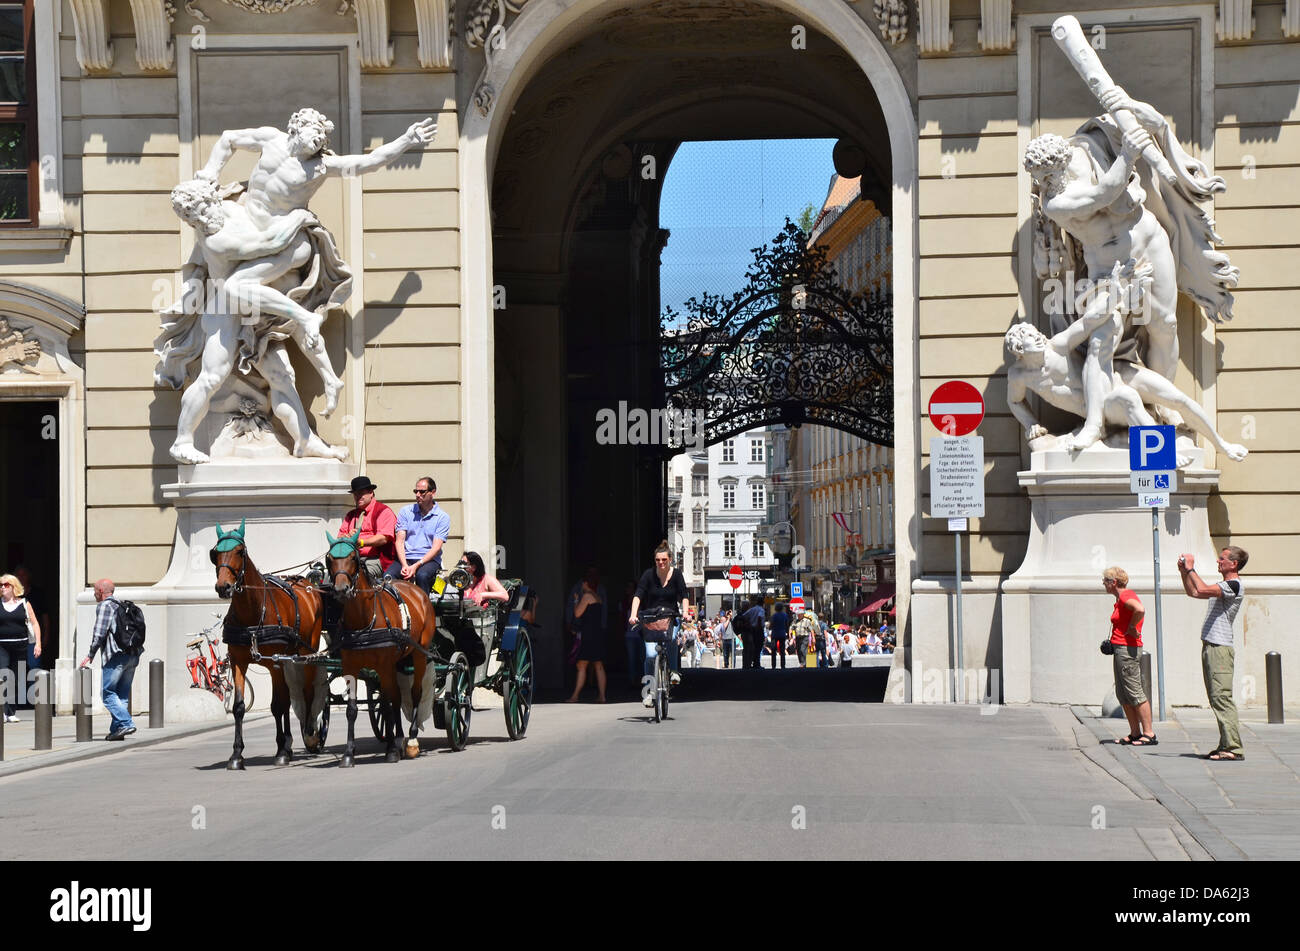 A ride on a Fiaker horse carriage through the Hofburg is a must and one of the great tourist attractions of Vienna. - Stock Image